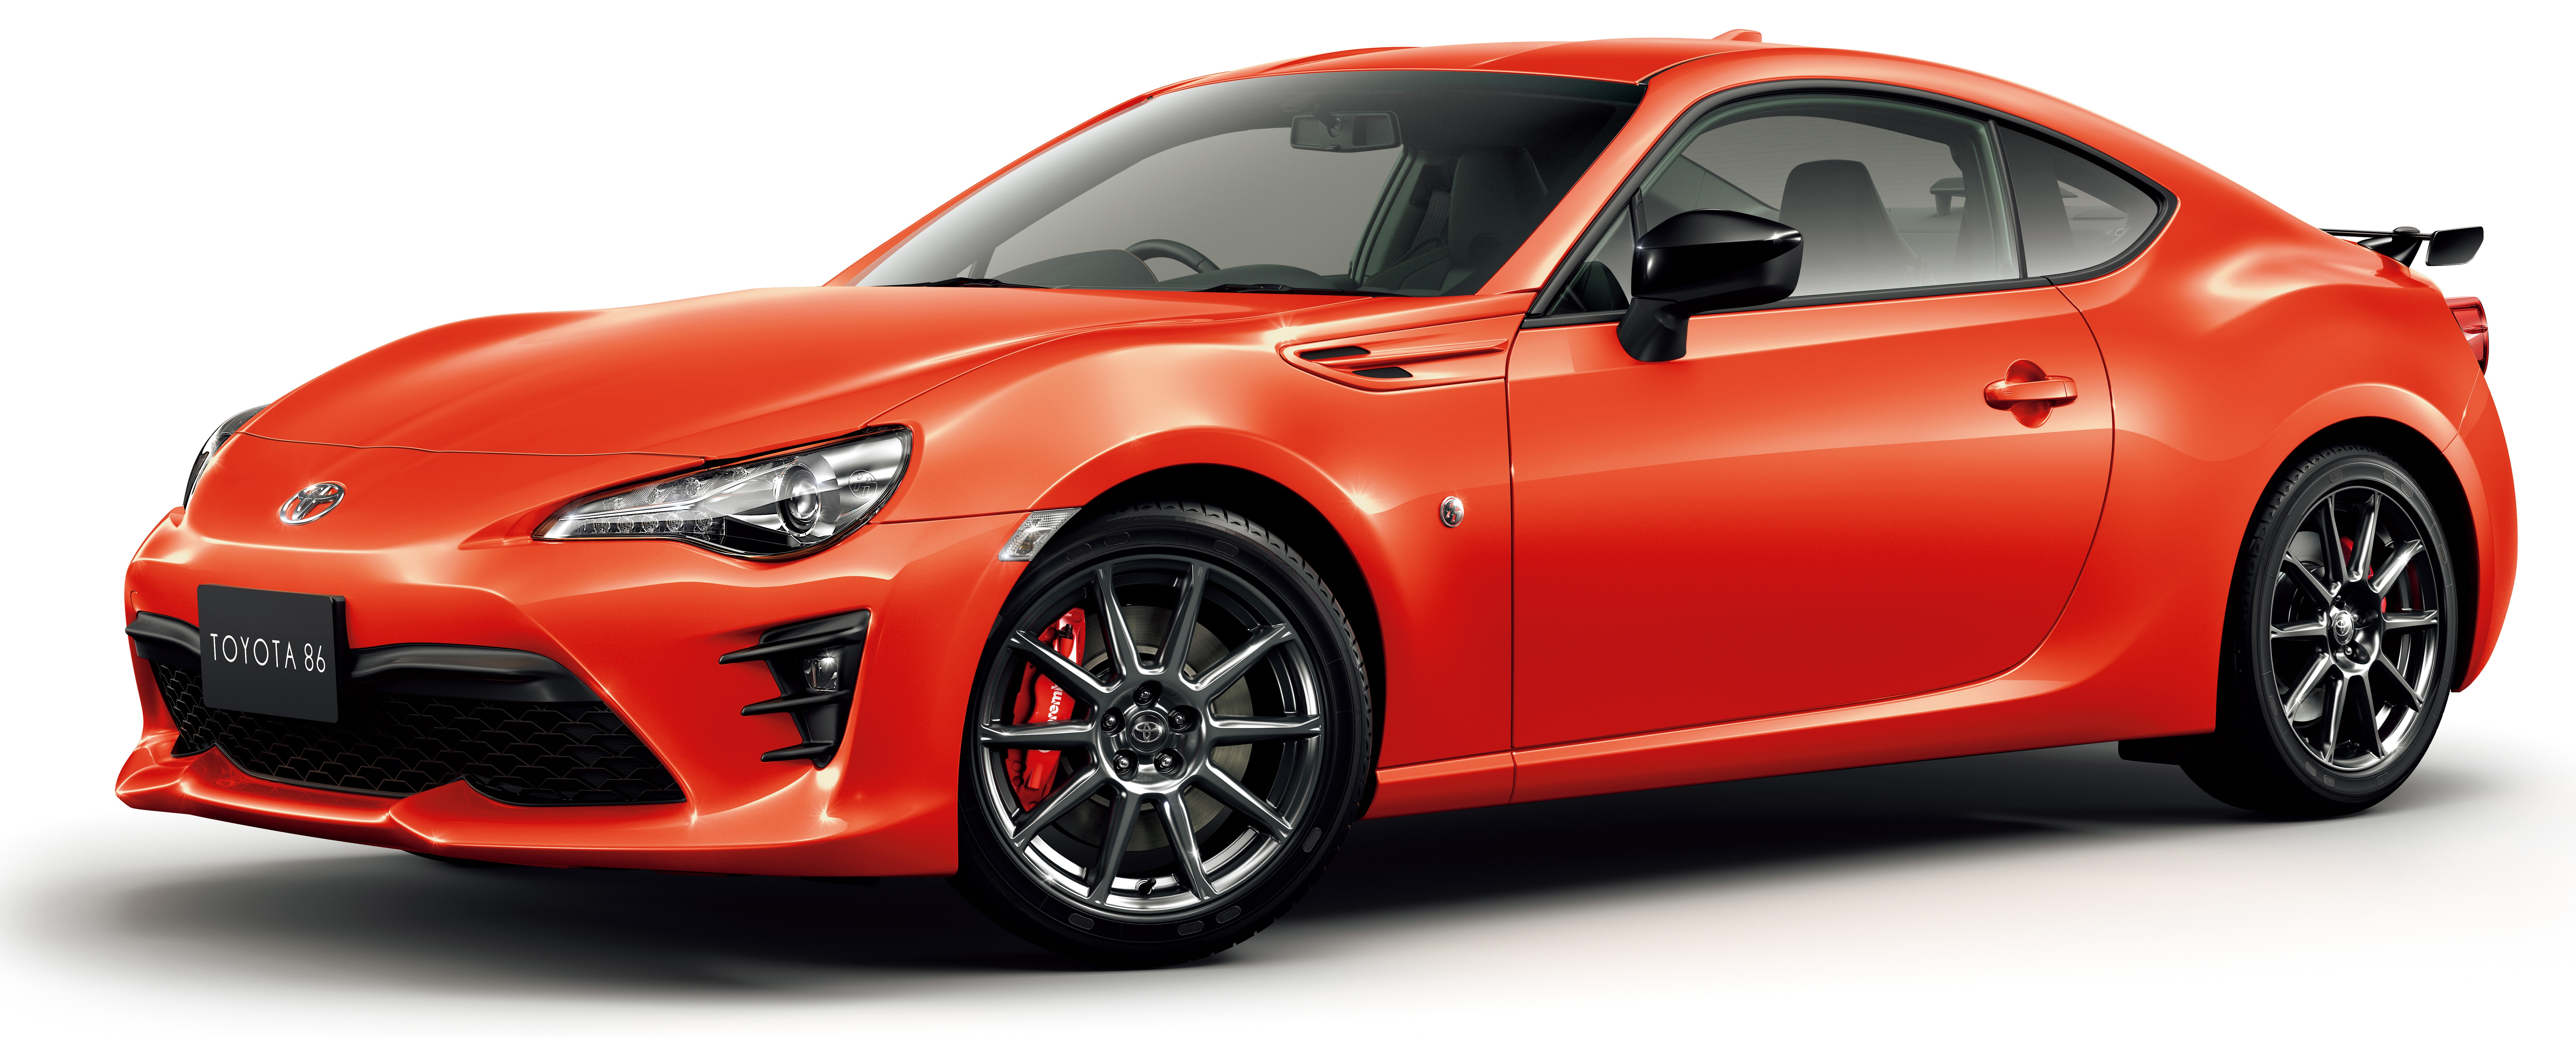 Toyota Of Orange >> Toyota 86 gets Solar Orange Limited model, High Performance Package with Brembo brakes in Japan ...